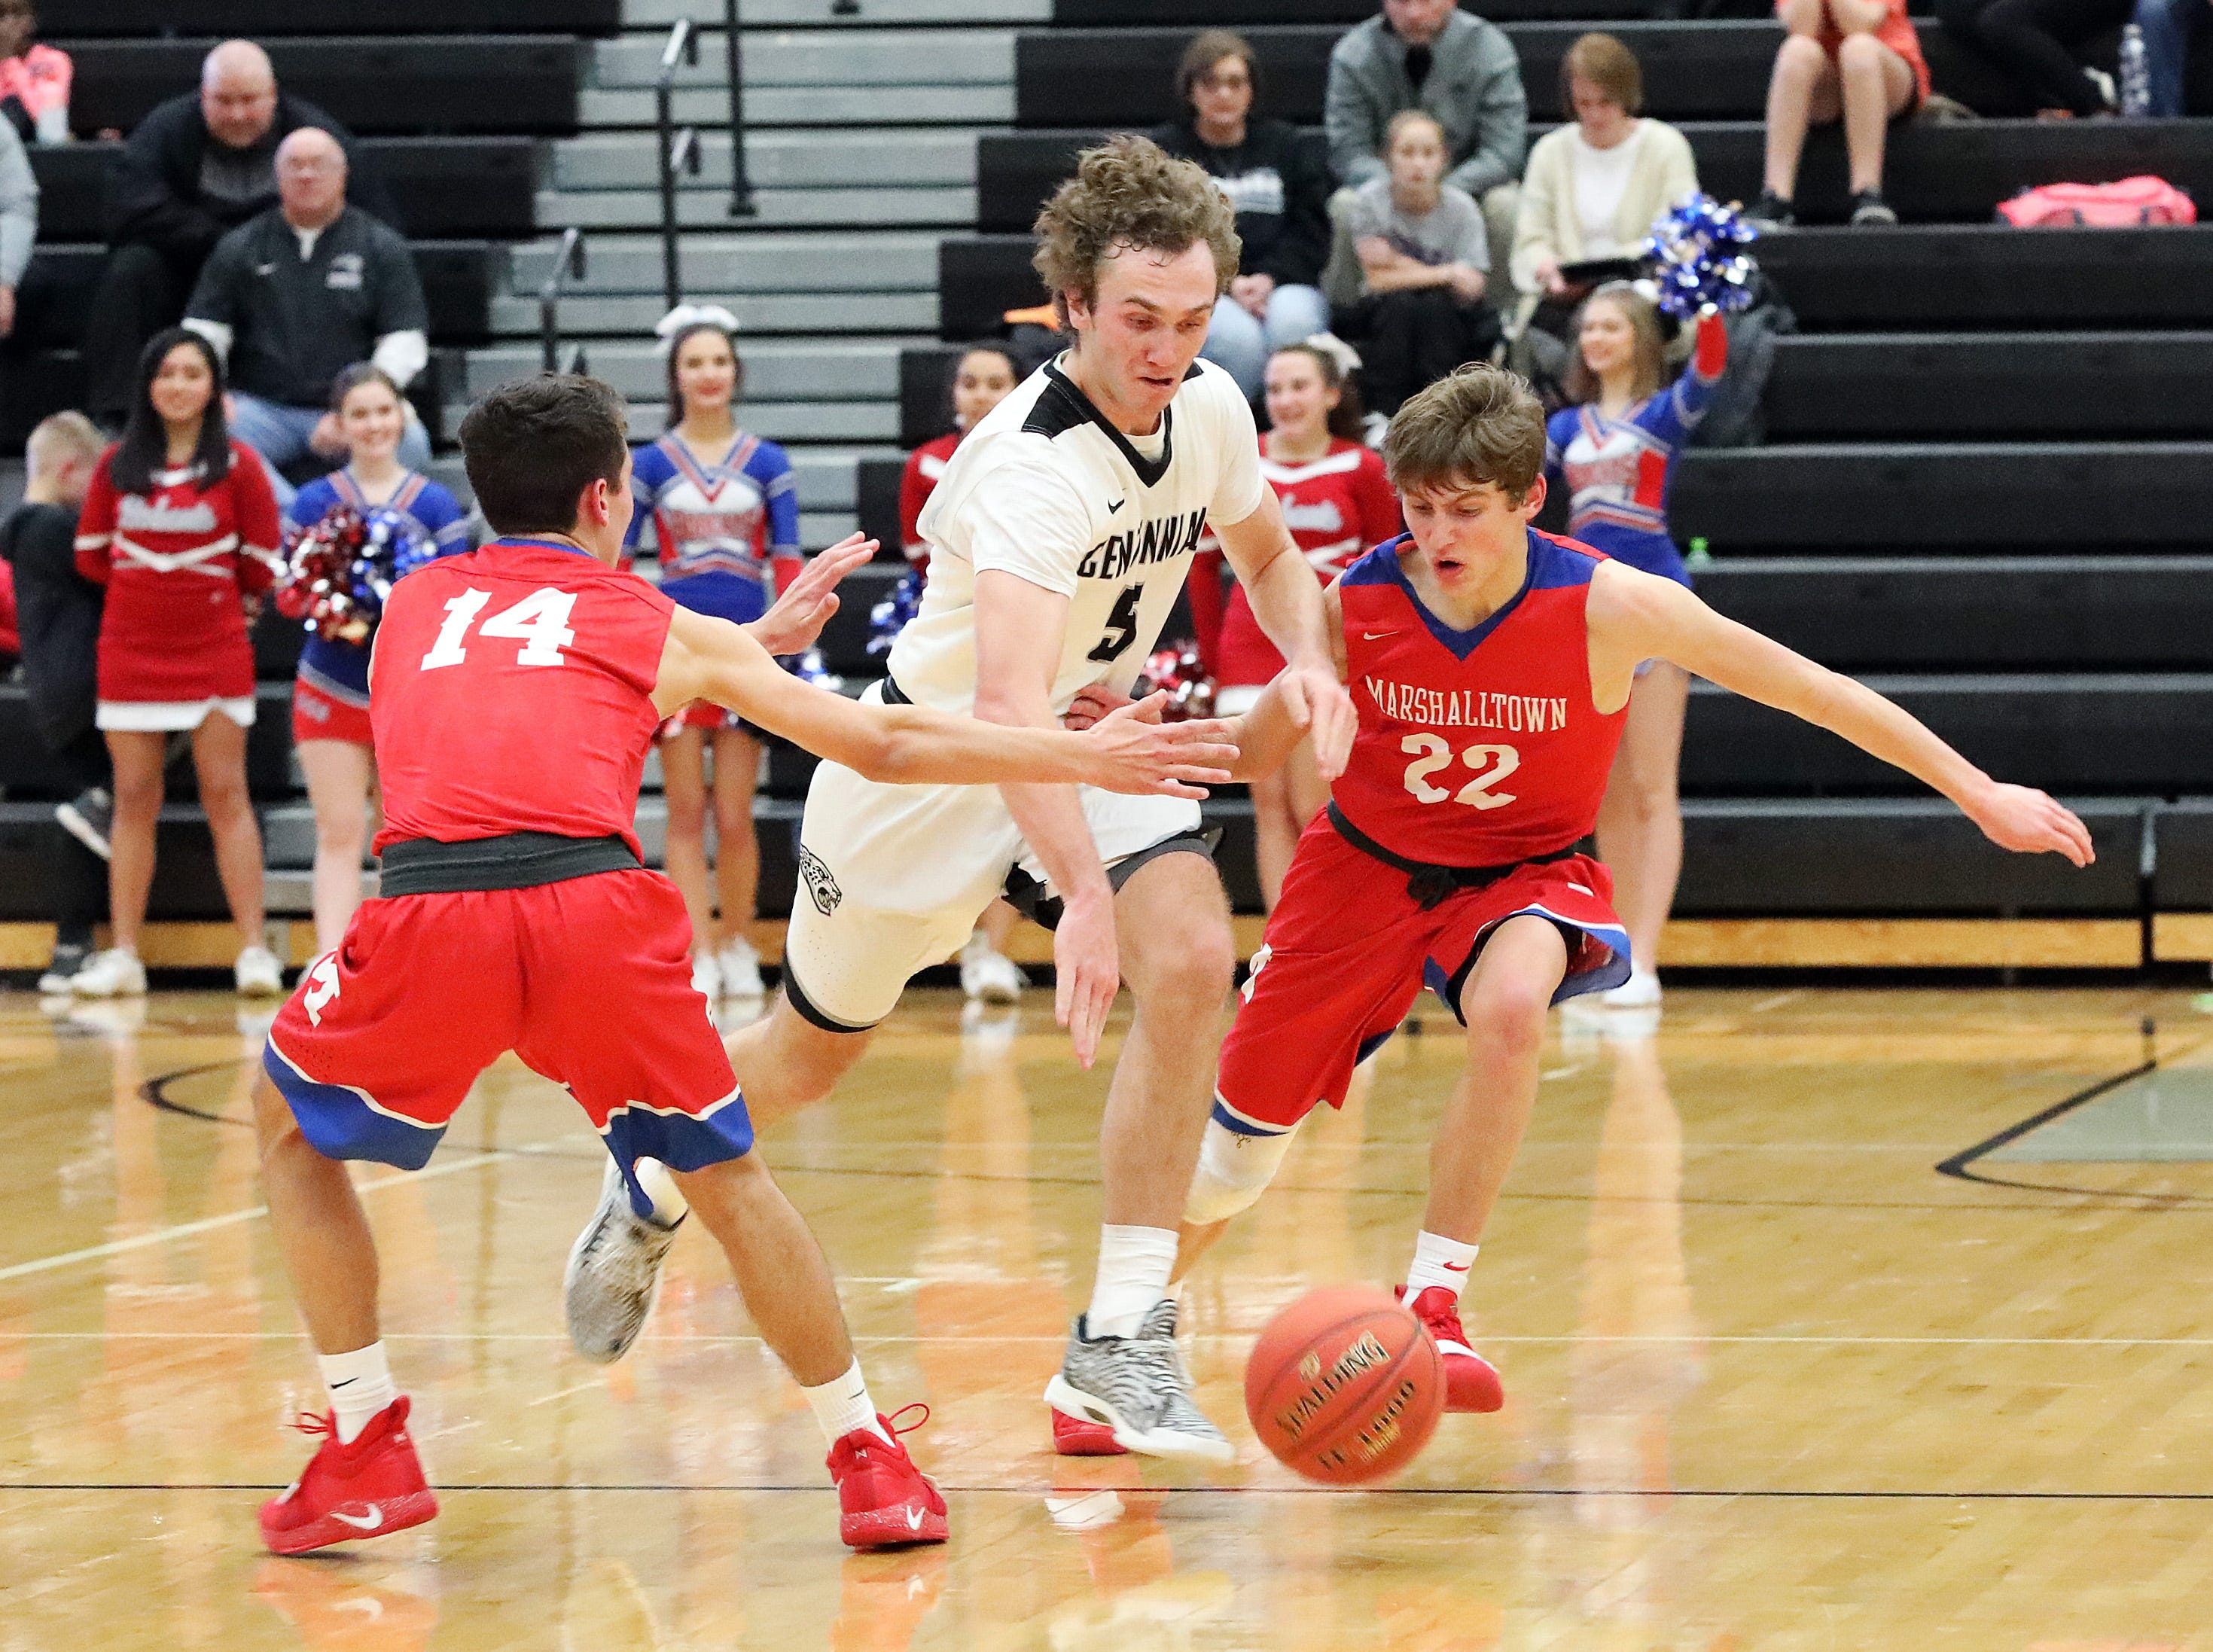 Ankeny Centennial junior Preston Kelling works through the double-team coverage as the Marshalltown Bobcats compete against the Ankeny Centennial Jaguars in high school boys basketball on Tuesday, Jan. 8, 2019 at Ankeny Centennial High.